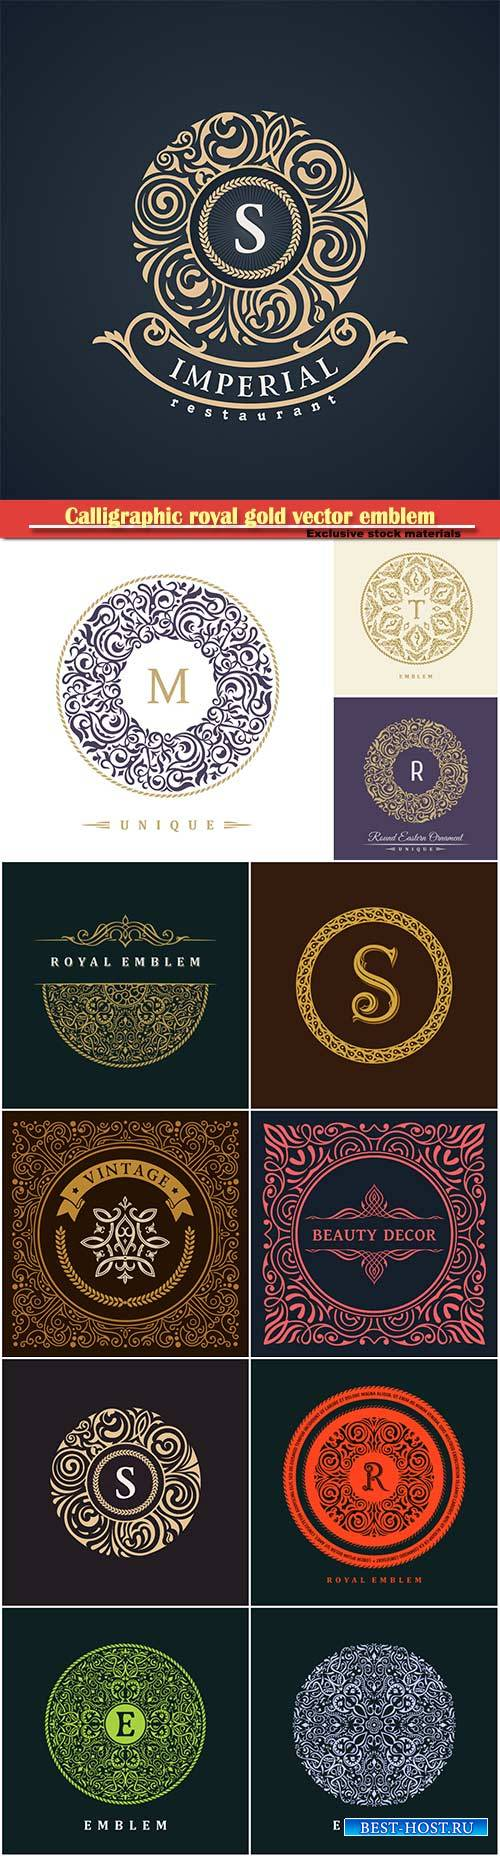 Calligraphic royal gold vector emblem, logo design template, label